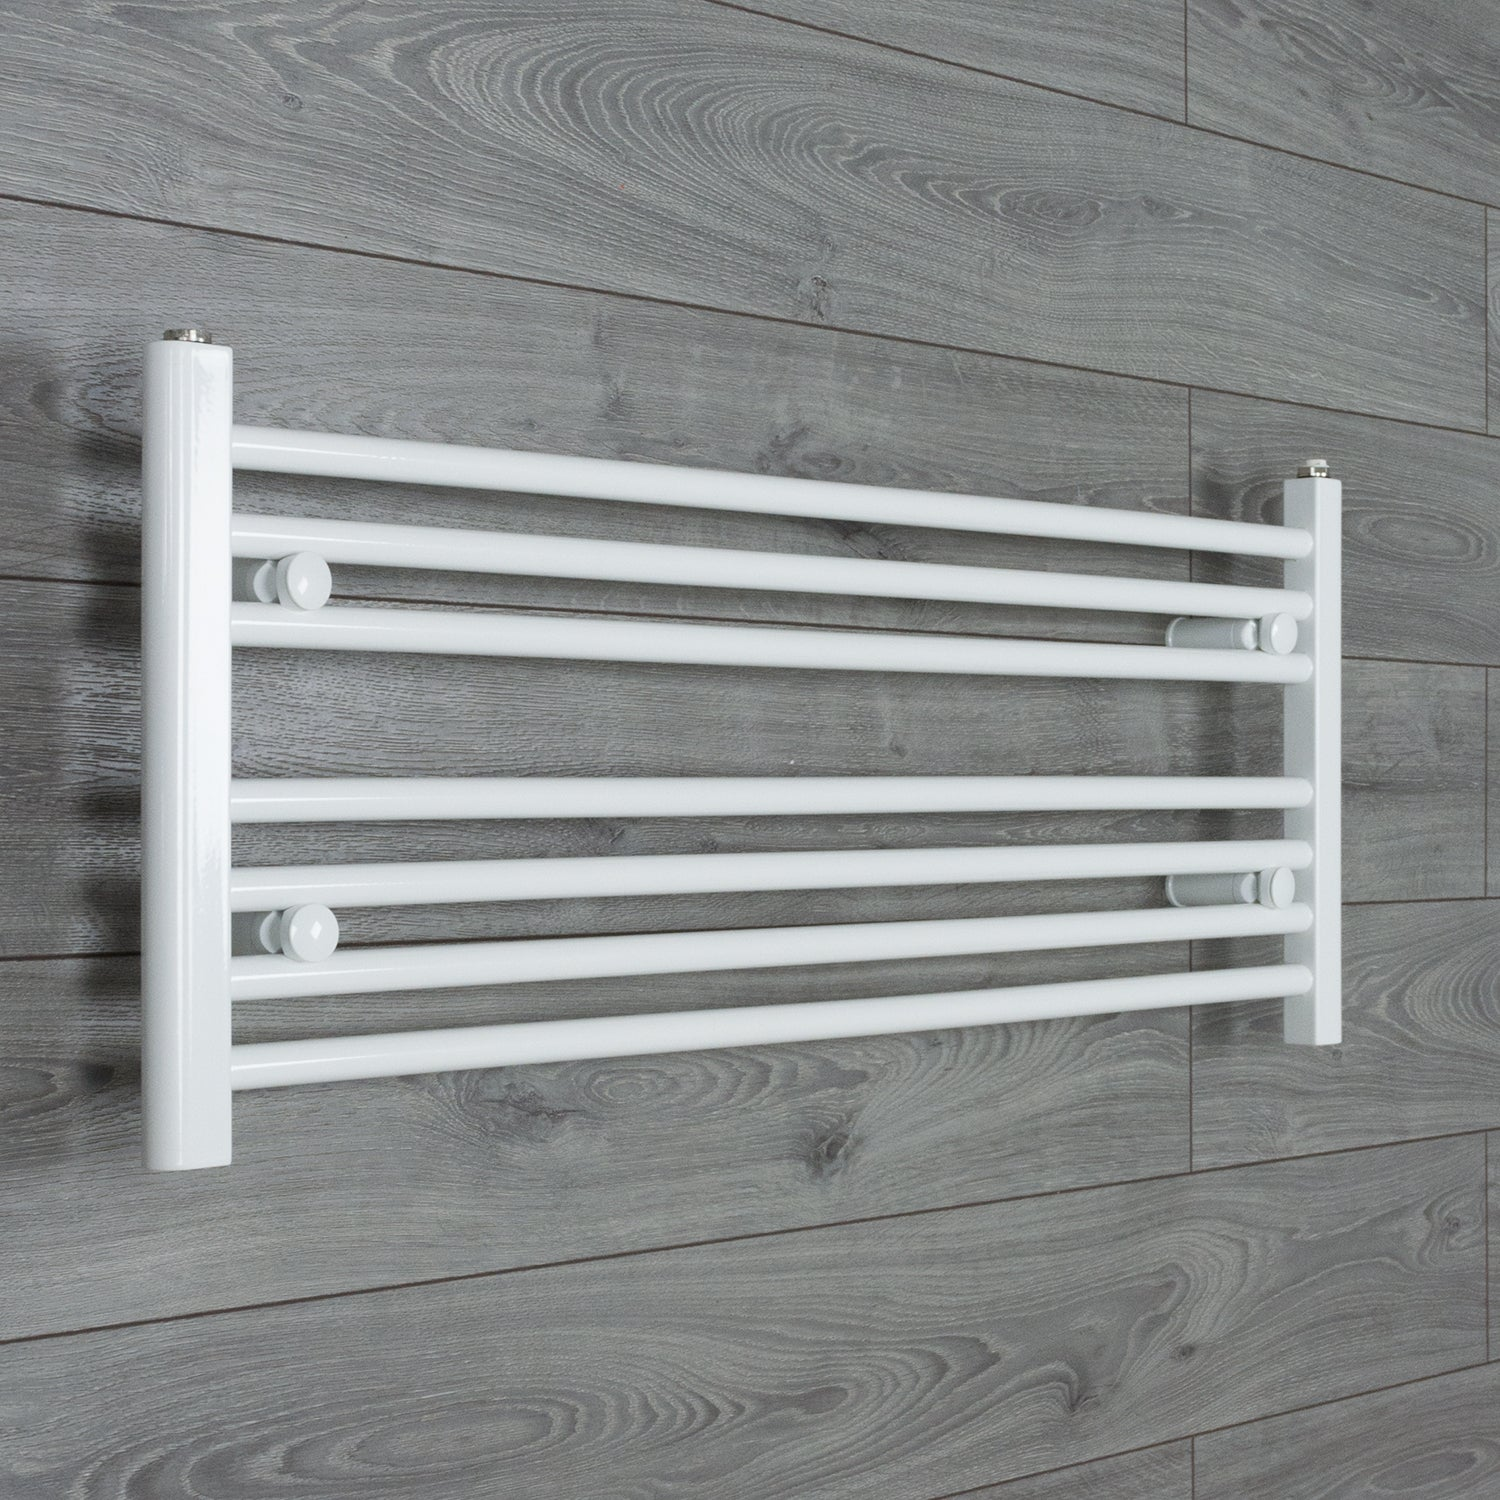 1100mm Wide 400mm High Flat White Heated Towel Rail Radiator HTR,Towel Rail Only